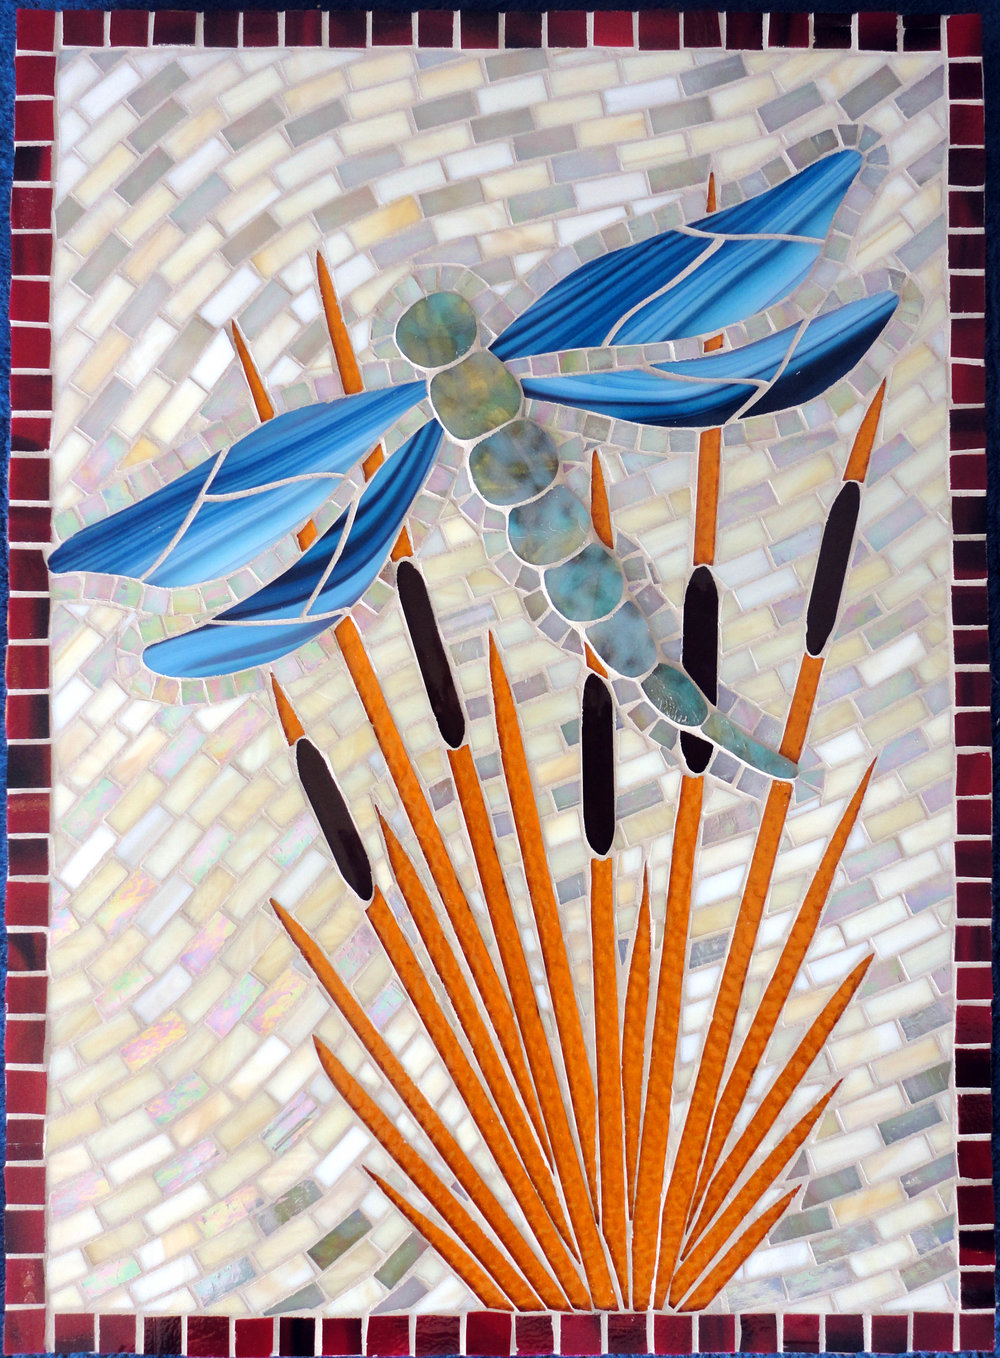 Dragonfly (Commission) (Stained Glass)